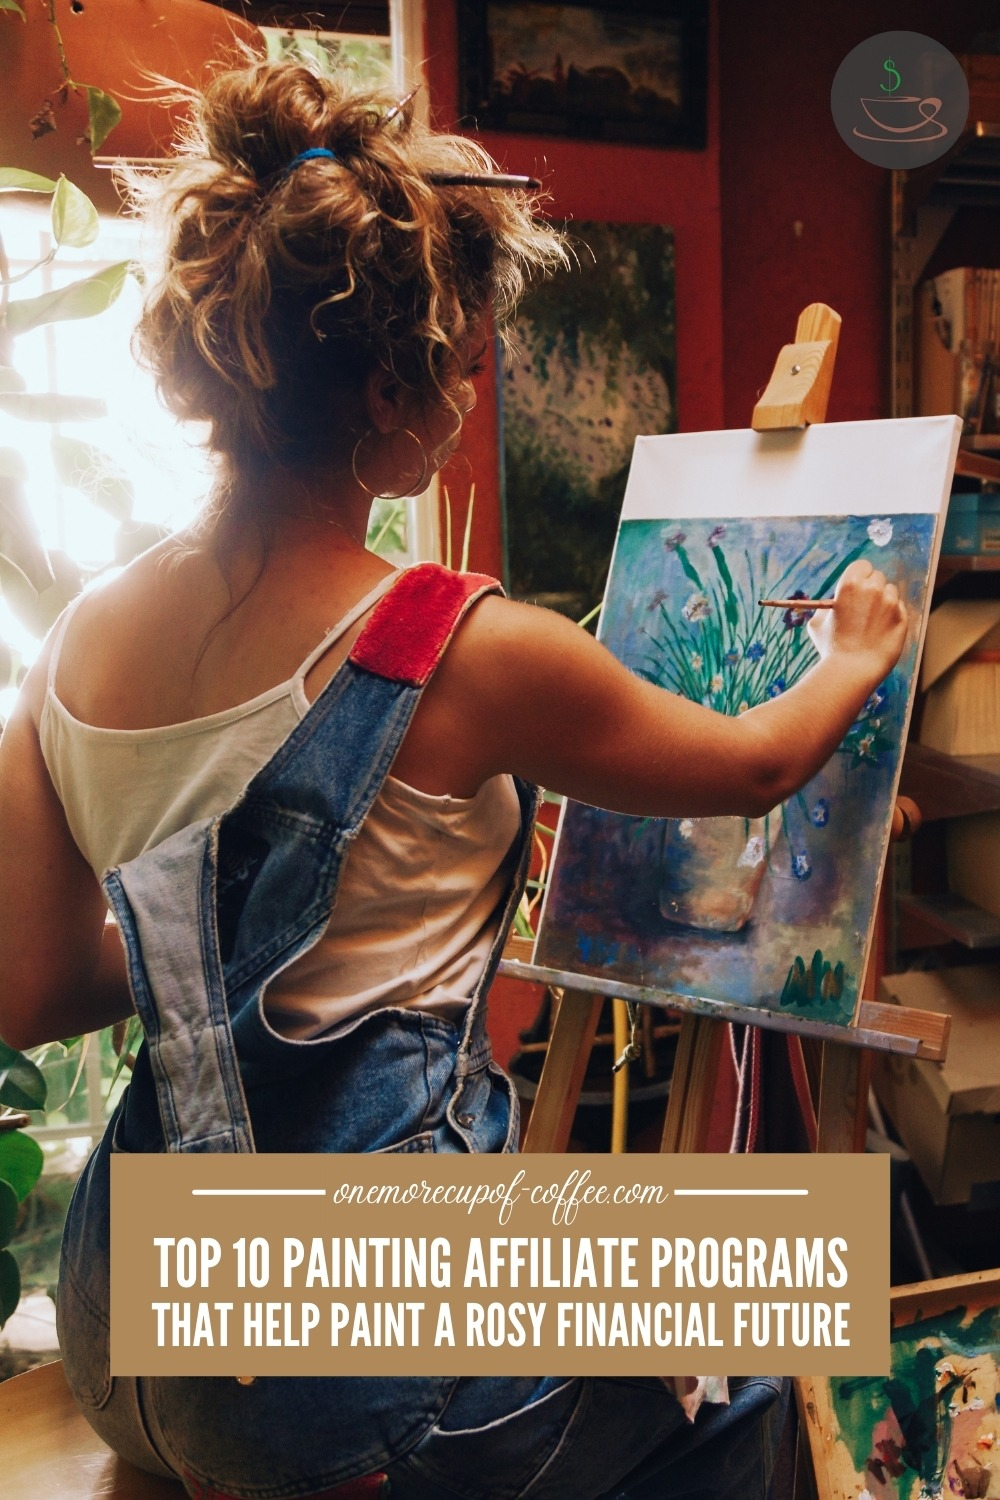 """a female painter in her studio, seated while painting; with text overlay """"Top 10 Painting Affiliate Programs That Help Paint A Rosy Financial Future"""""""